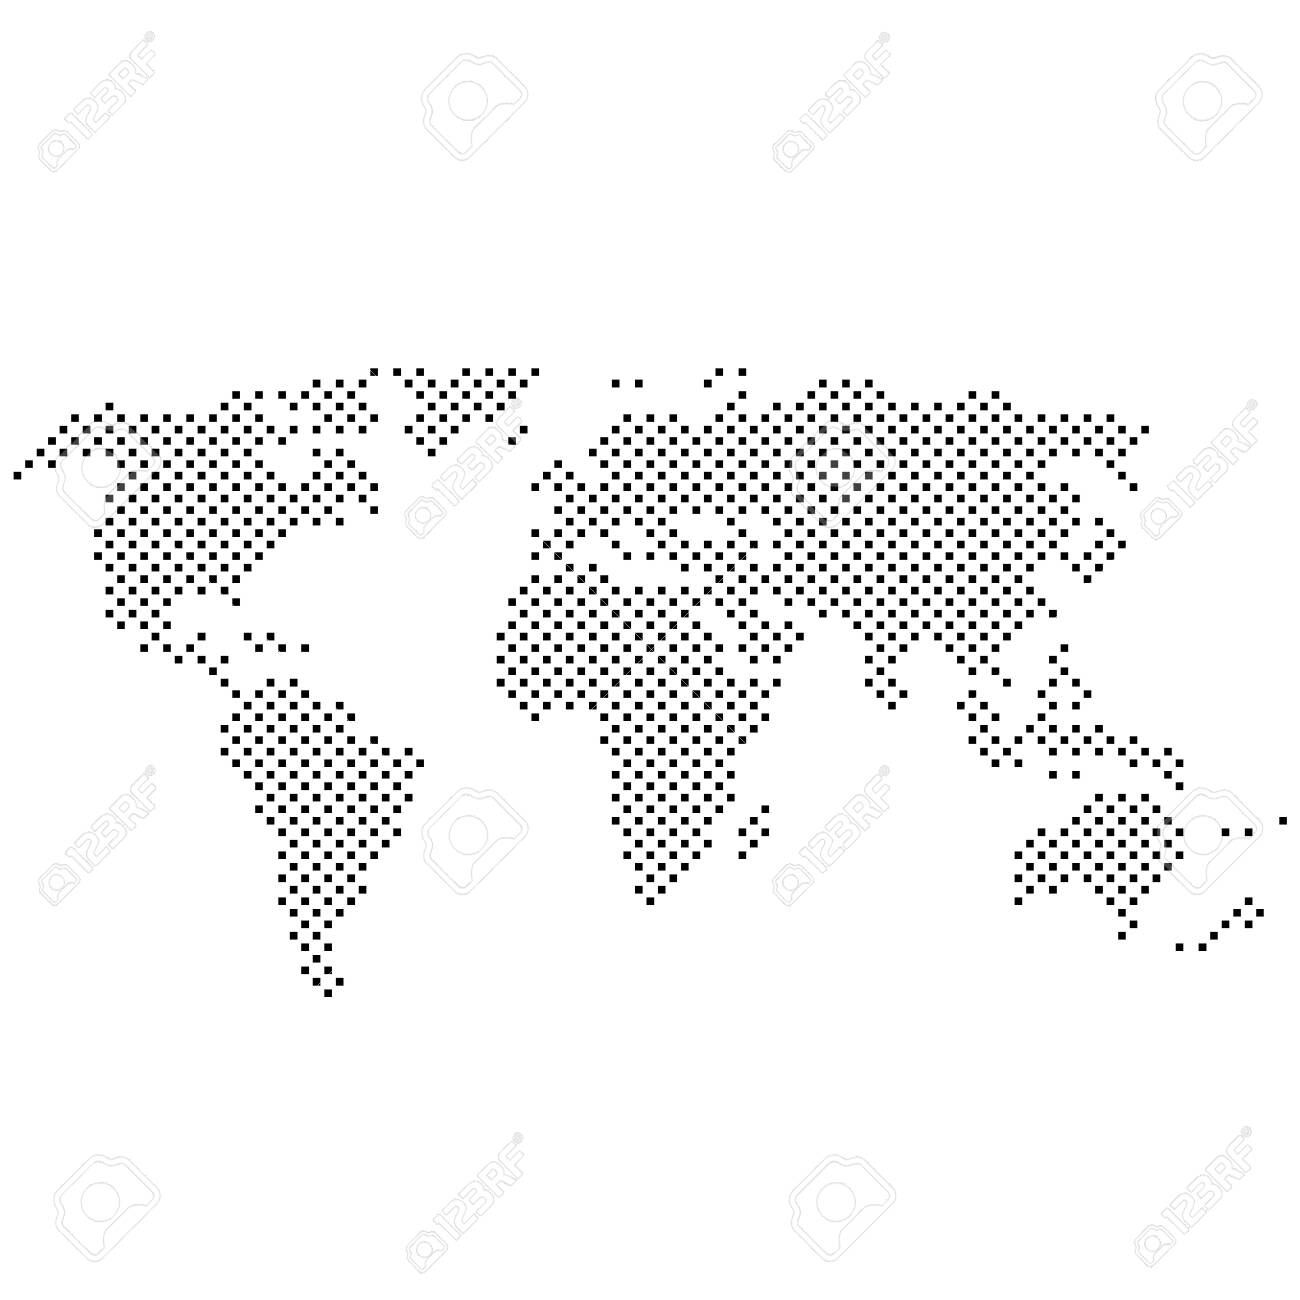 Image of: Simple Abstract Pixelated Black And White World Map Icon Vector Royalty Free Cliparts Vectors And Stock Illustration Image 134109175